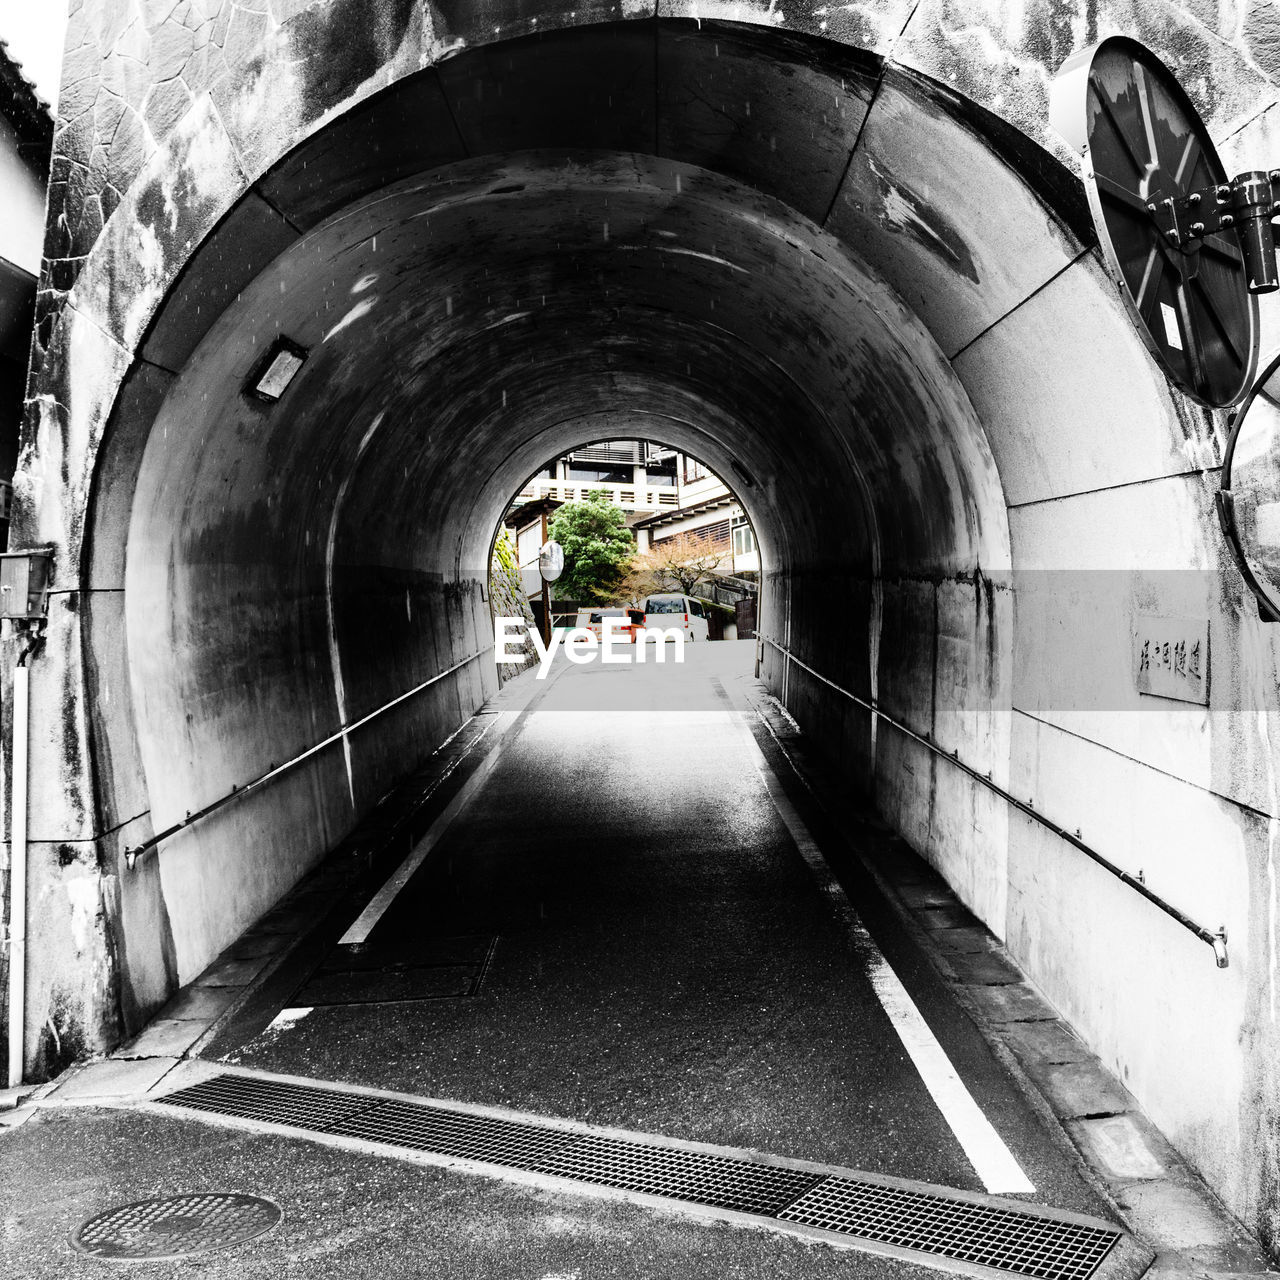 Tunnel leading towards building